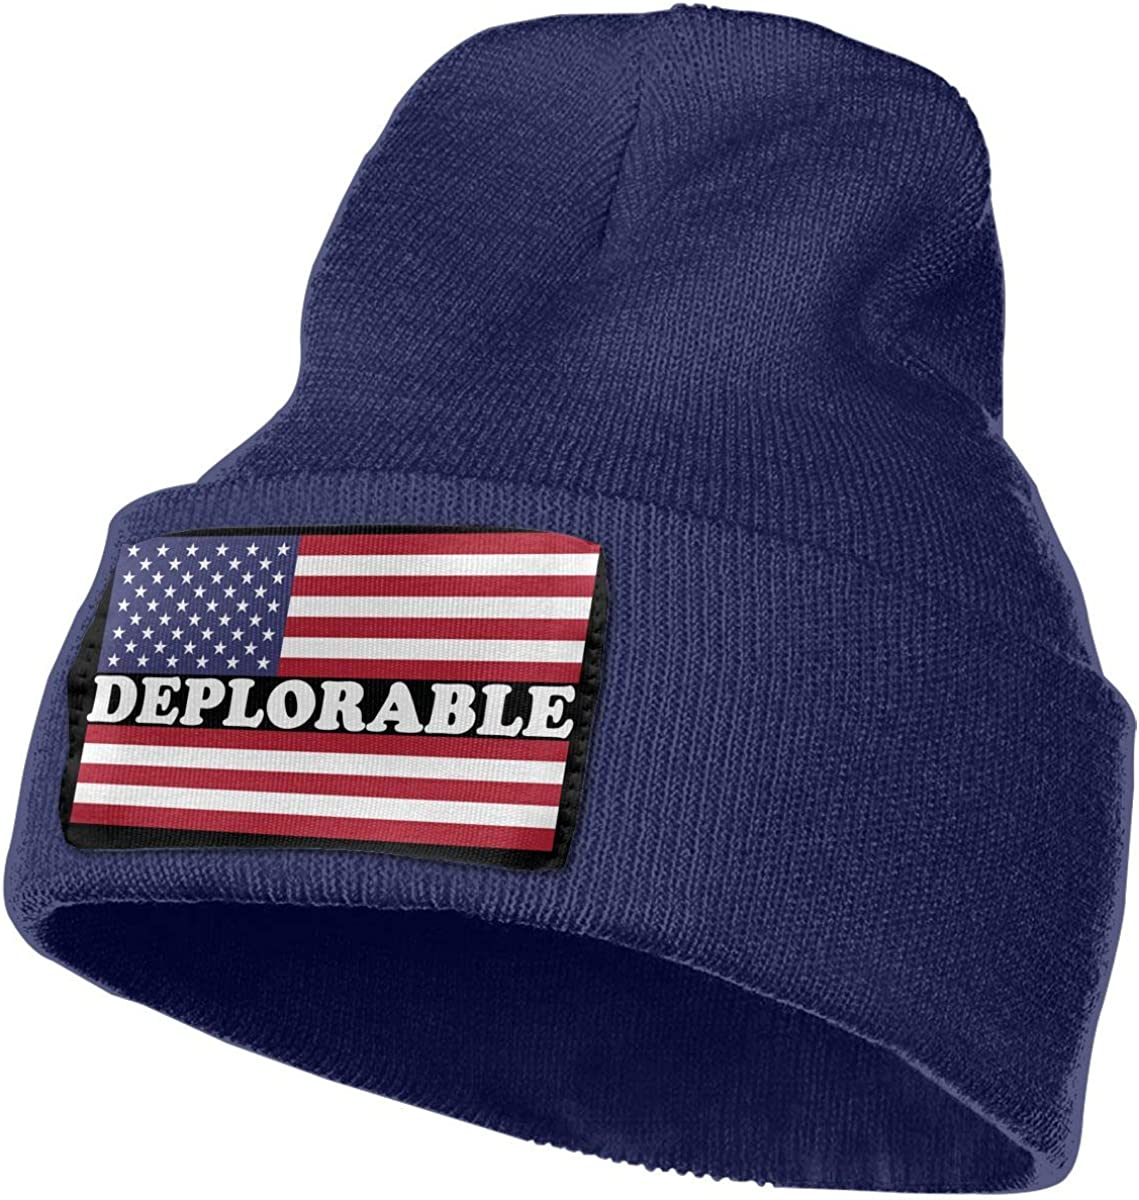 Deplorable American Flag Men Women Knit Hats Stretchy /& Soft Ski Cap Beanie